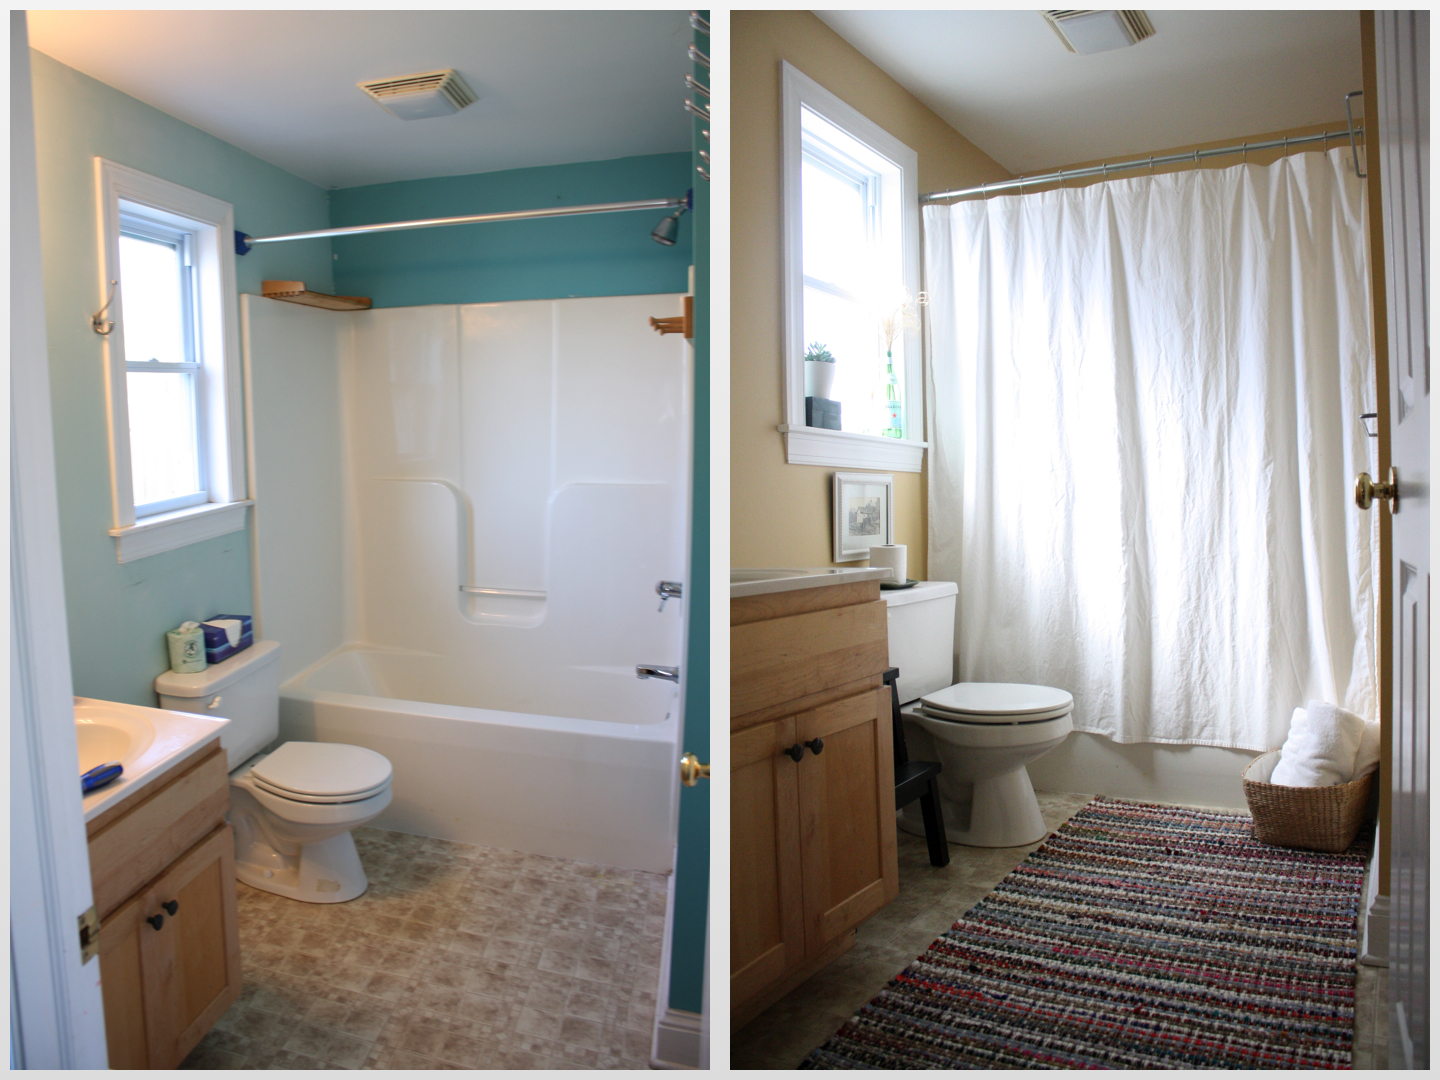 Cheap bathroom makeover Photo - 11 | Design your home